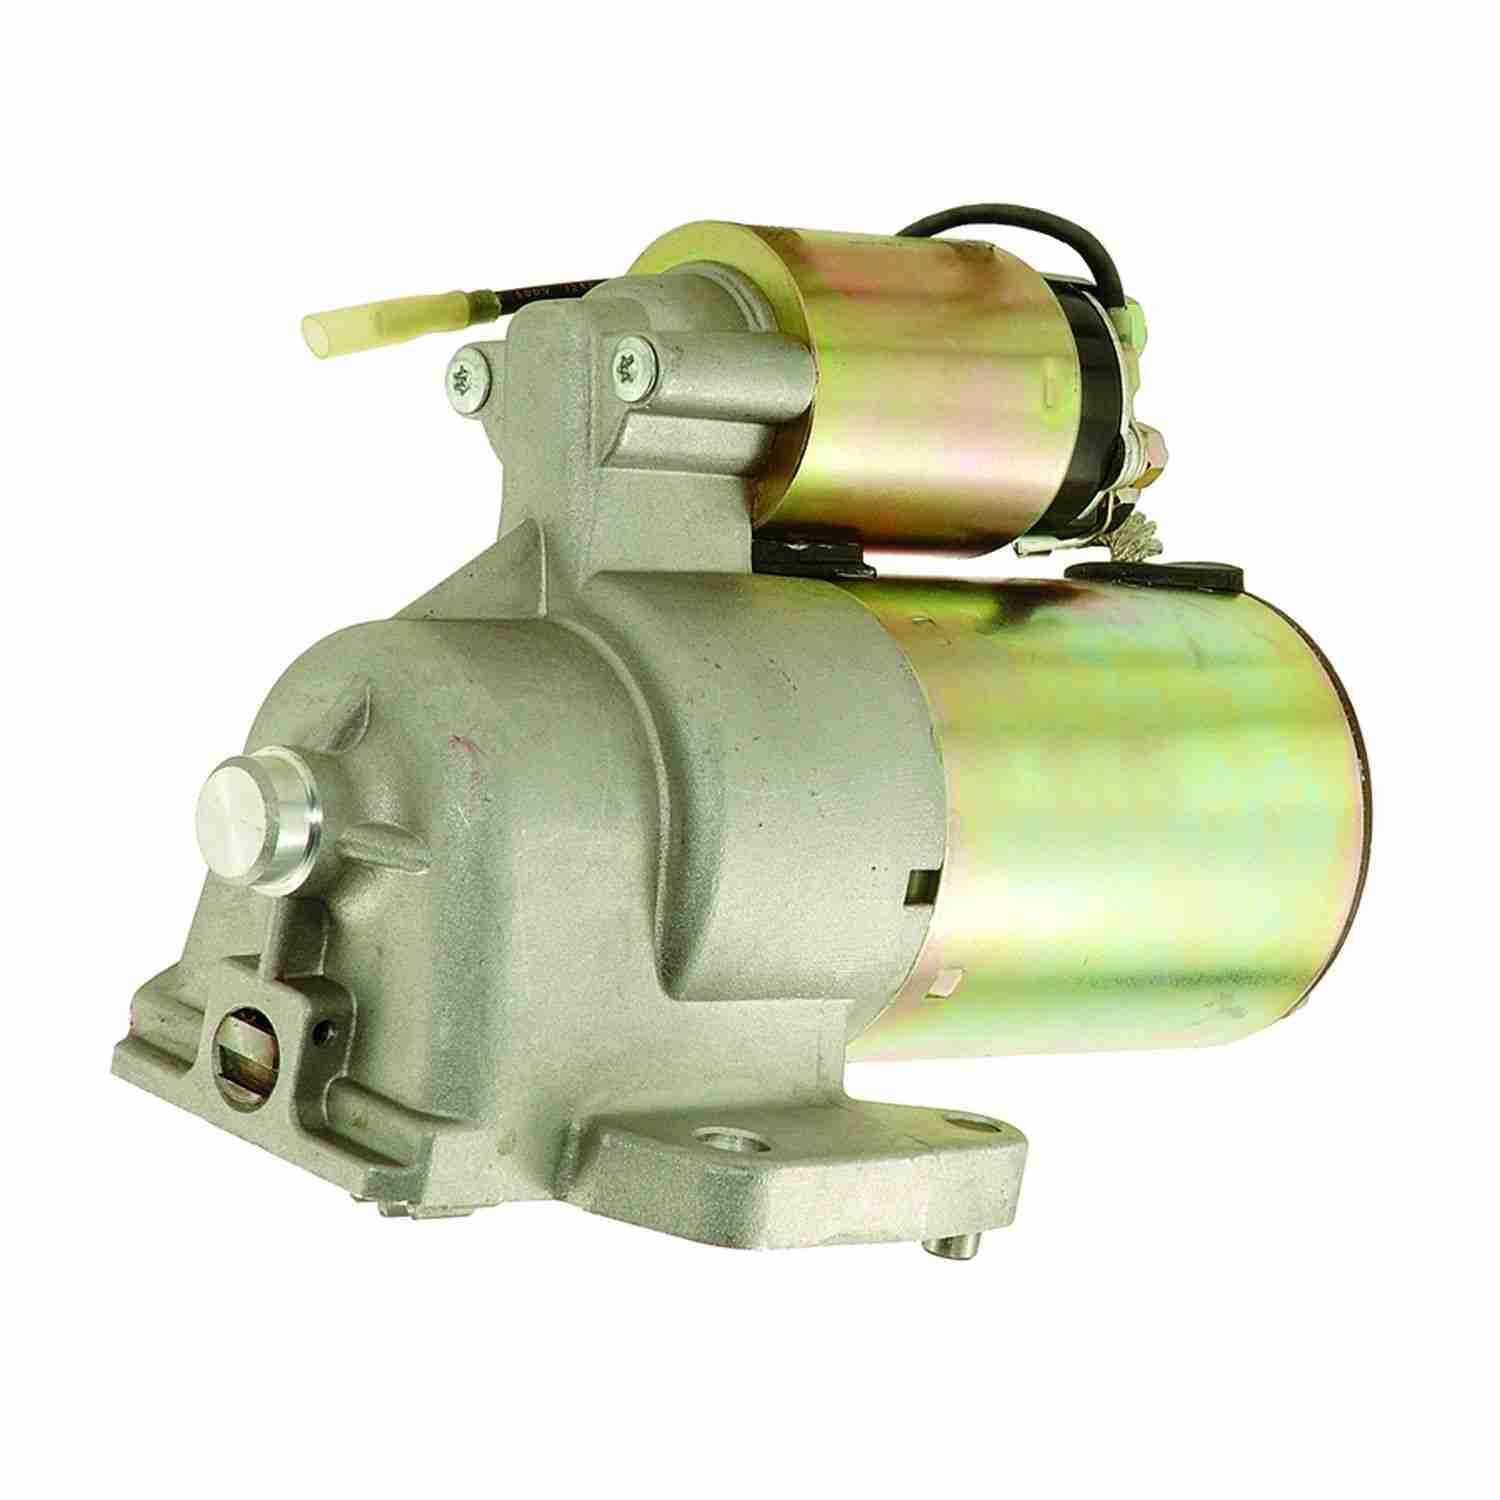 ACDELCO GOLD/PROFESSIONAL - Starter Motor - DCC 337-1047